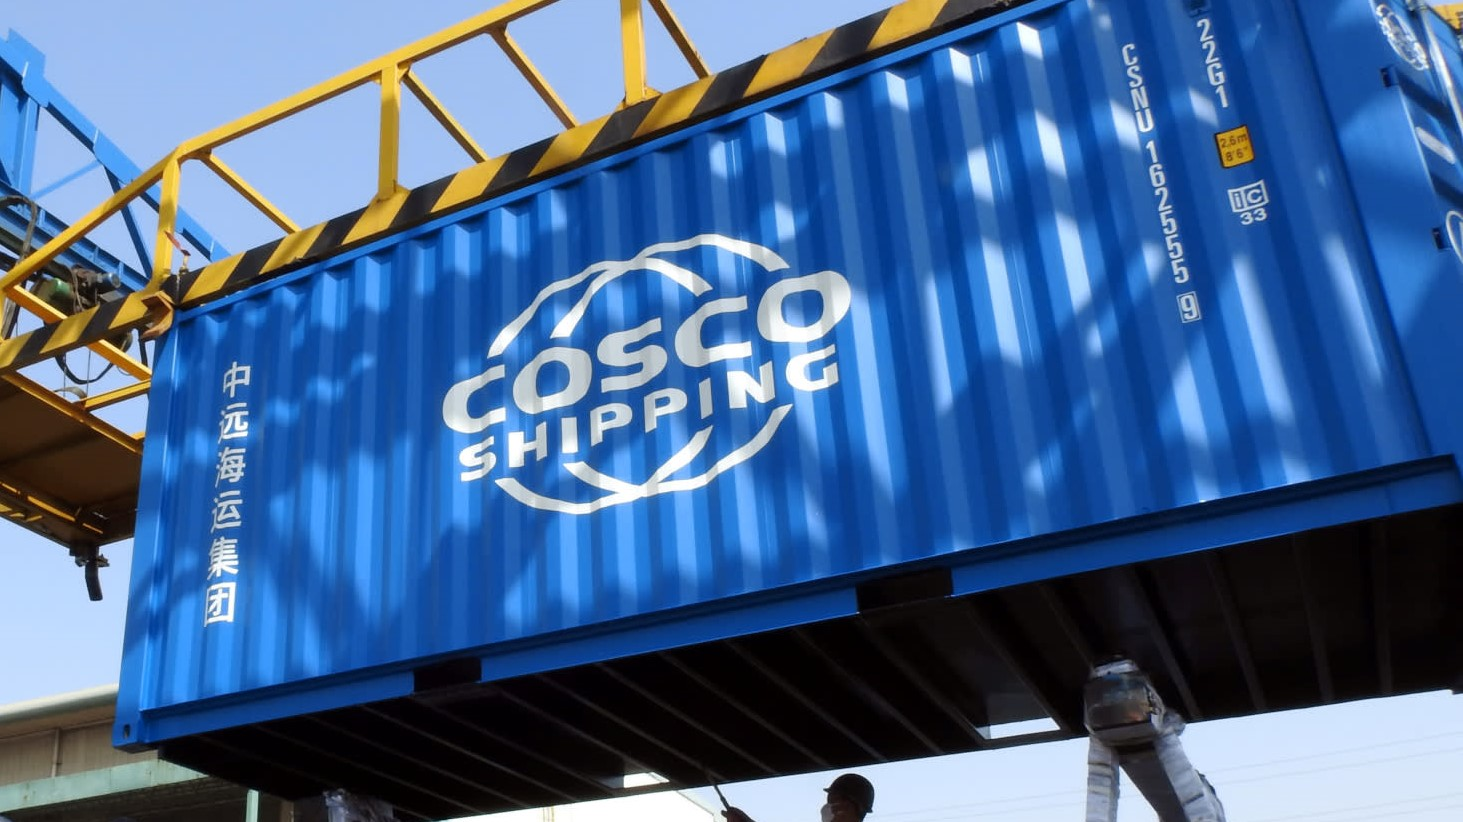 Cosco Shipping has developed new record-breaking ship with 25,000 TEU 1